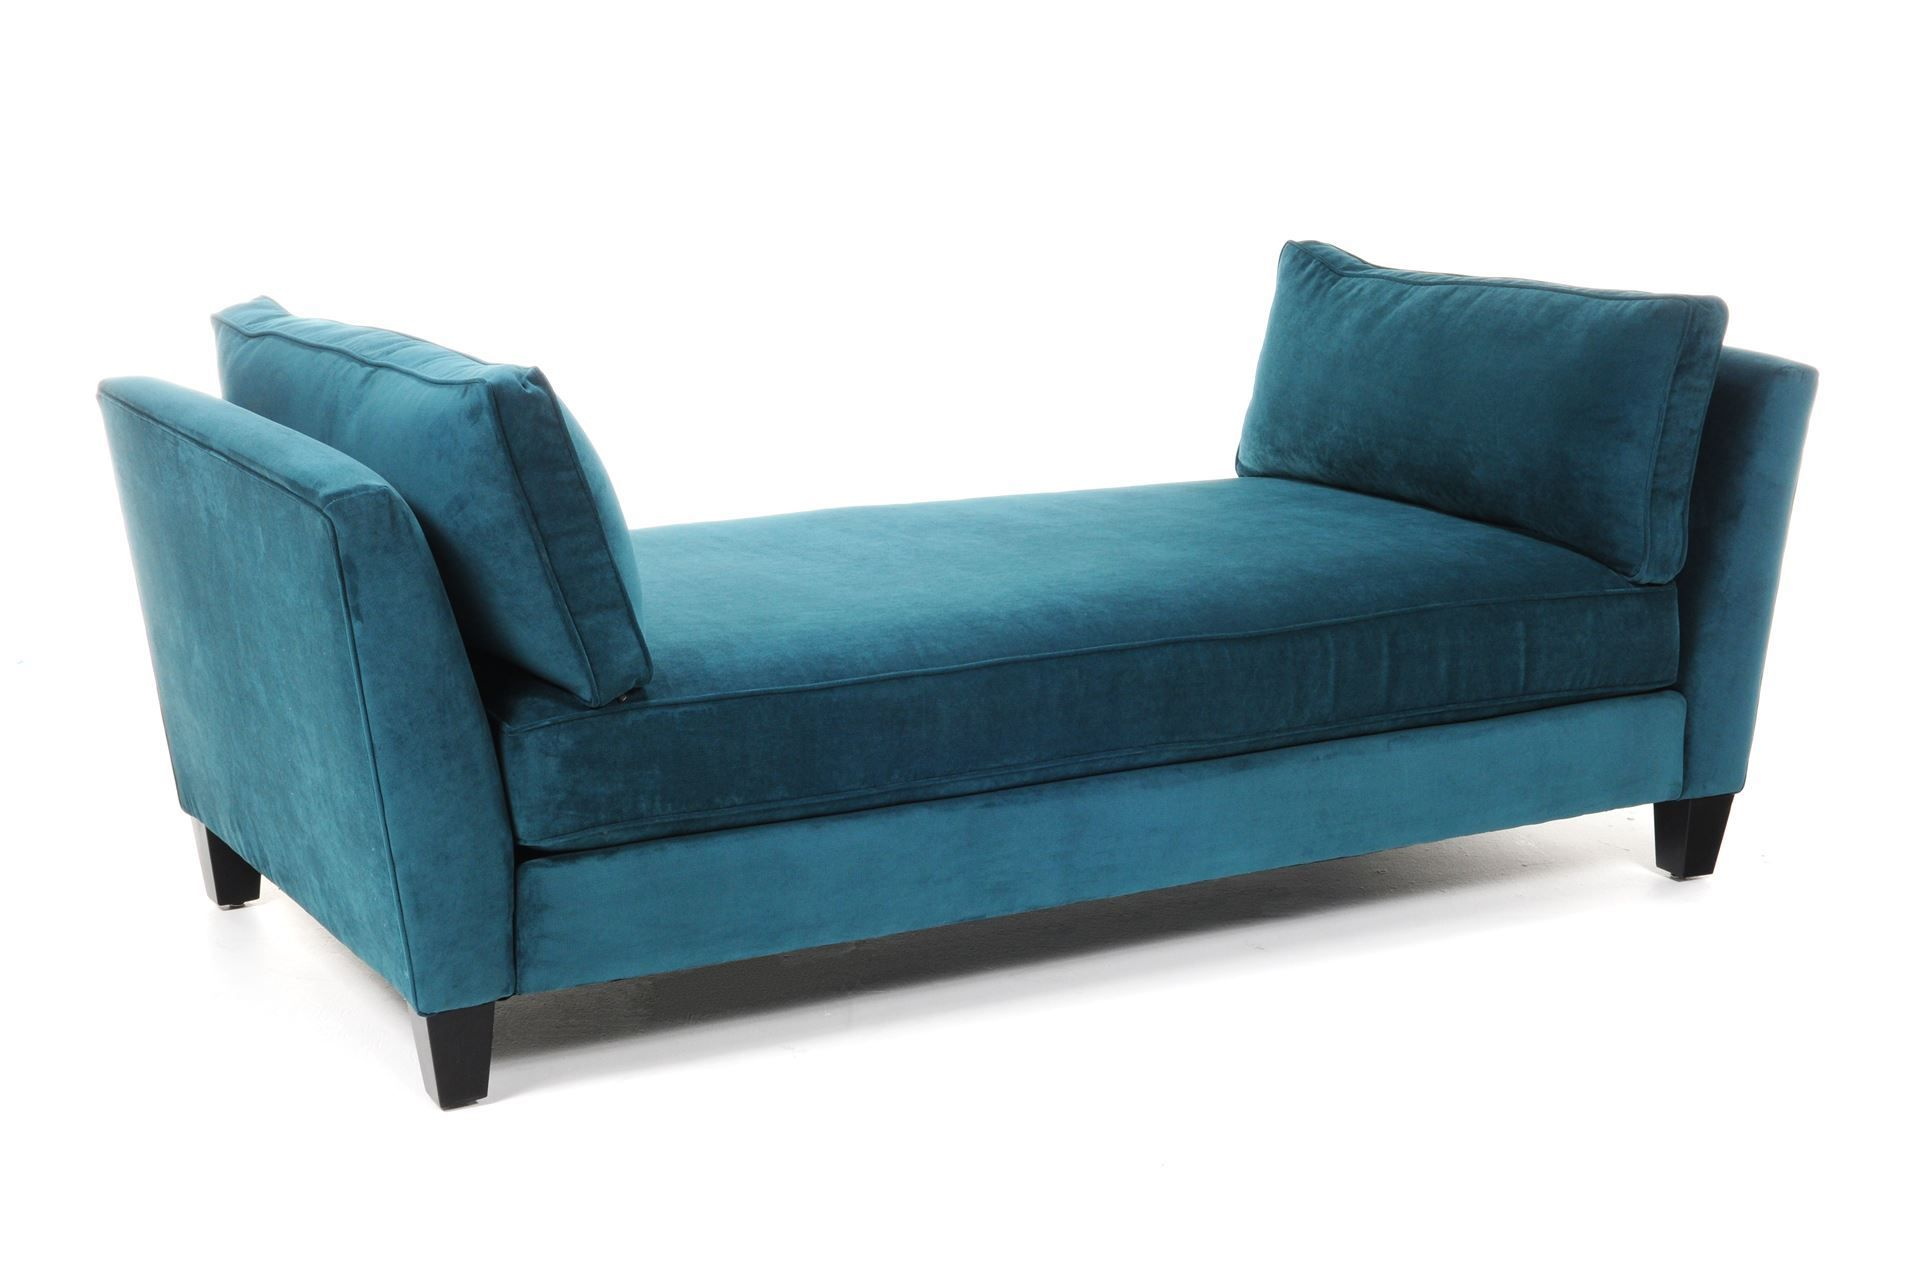 Fainting falling our lounging this beautiful chaise lounge will catch you every time  sc 1 st  Pinterest : daybeds and chaises - Sectionals, Sofas & Couches